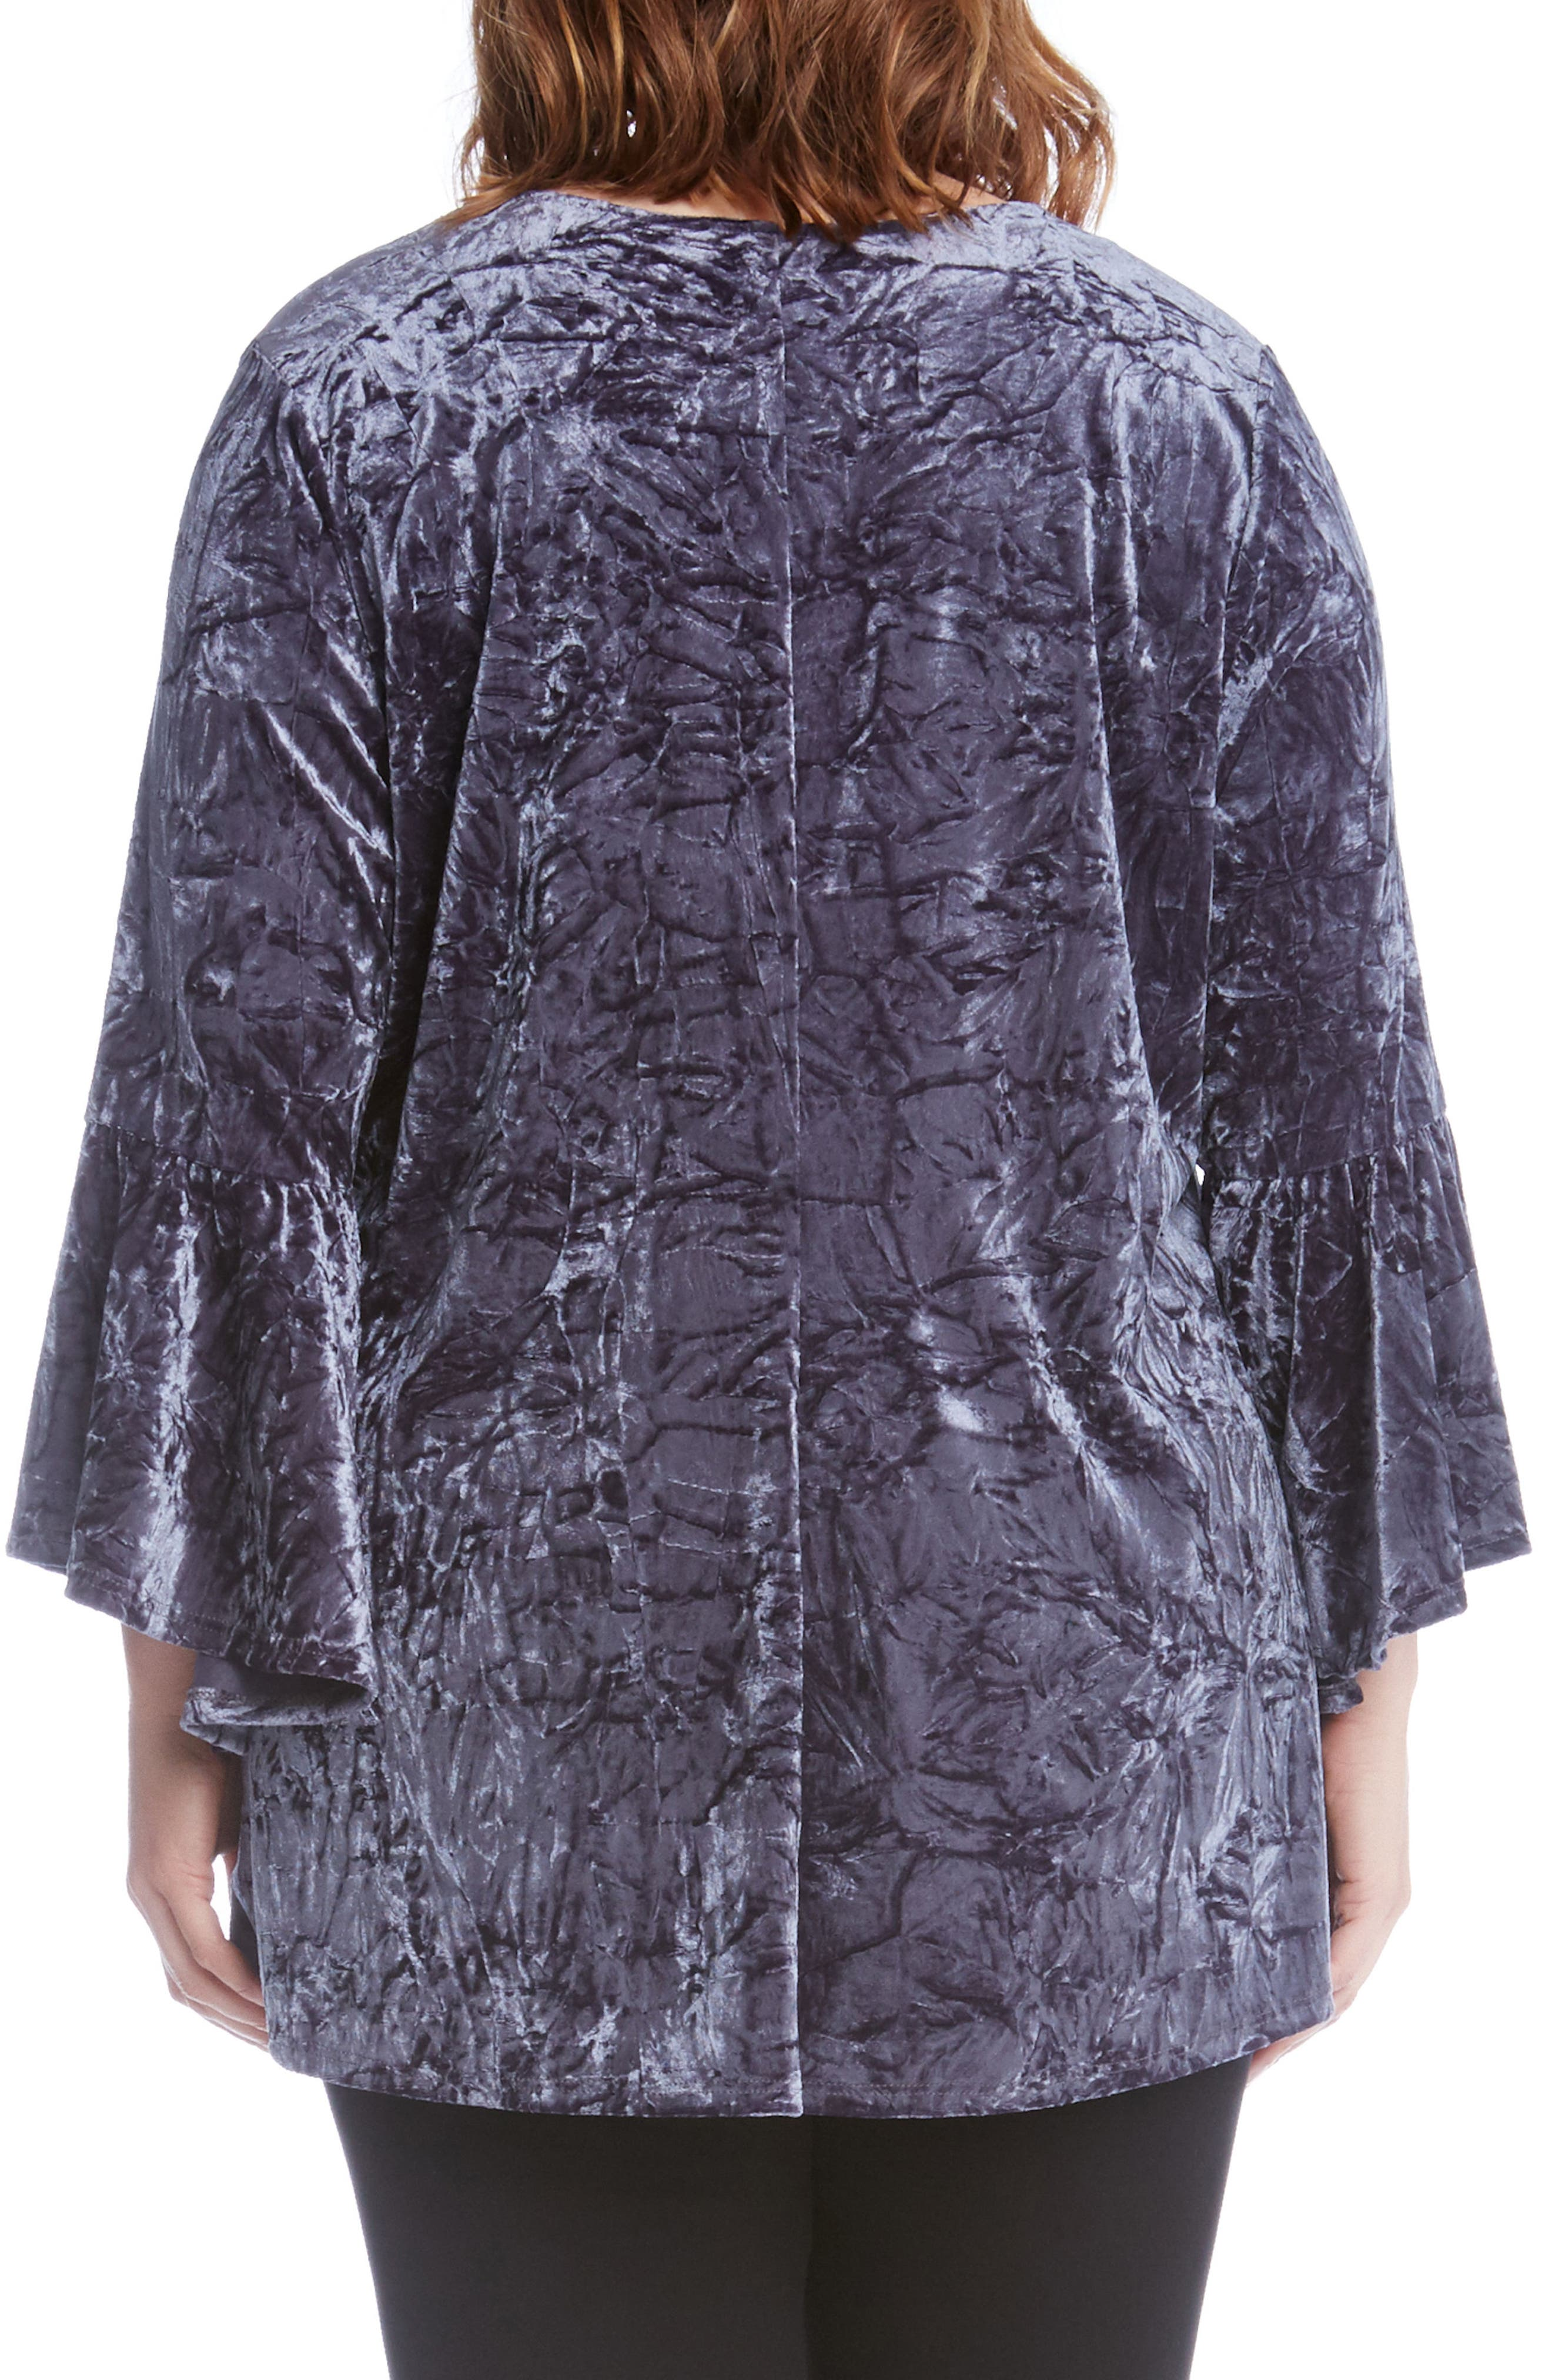 Alternate Image 3  - Karen Kane Bell Sleeve Crushed Velvet Top (Plus Size)